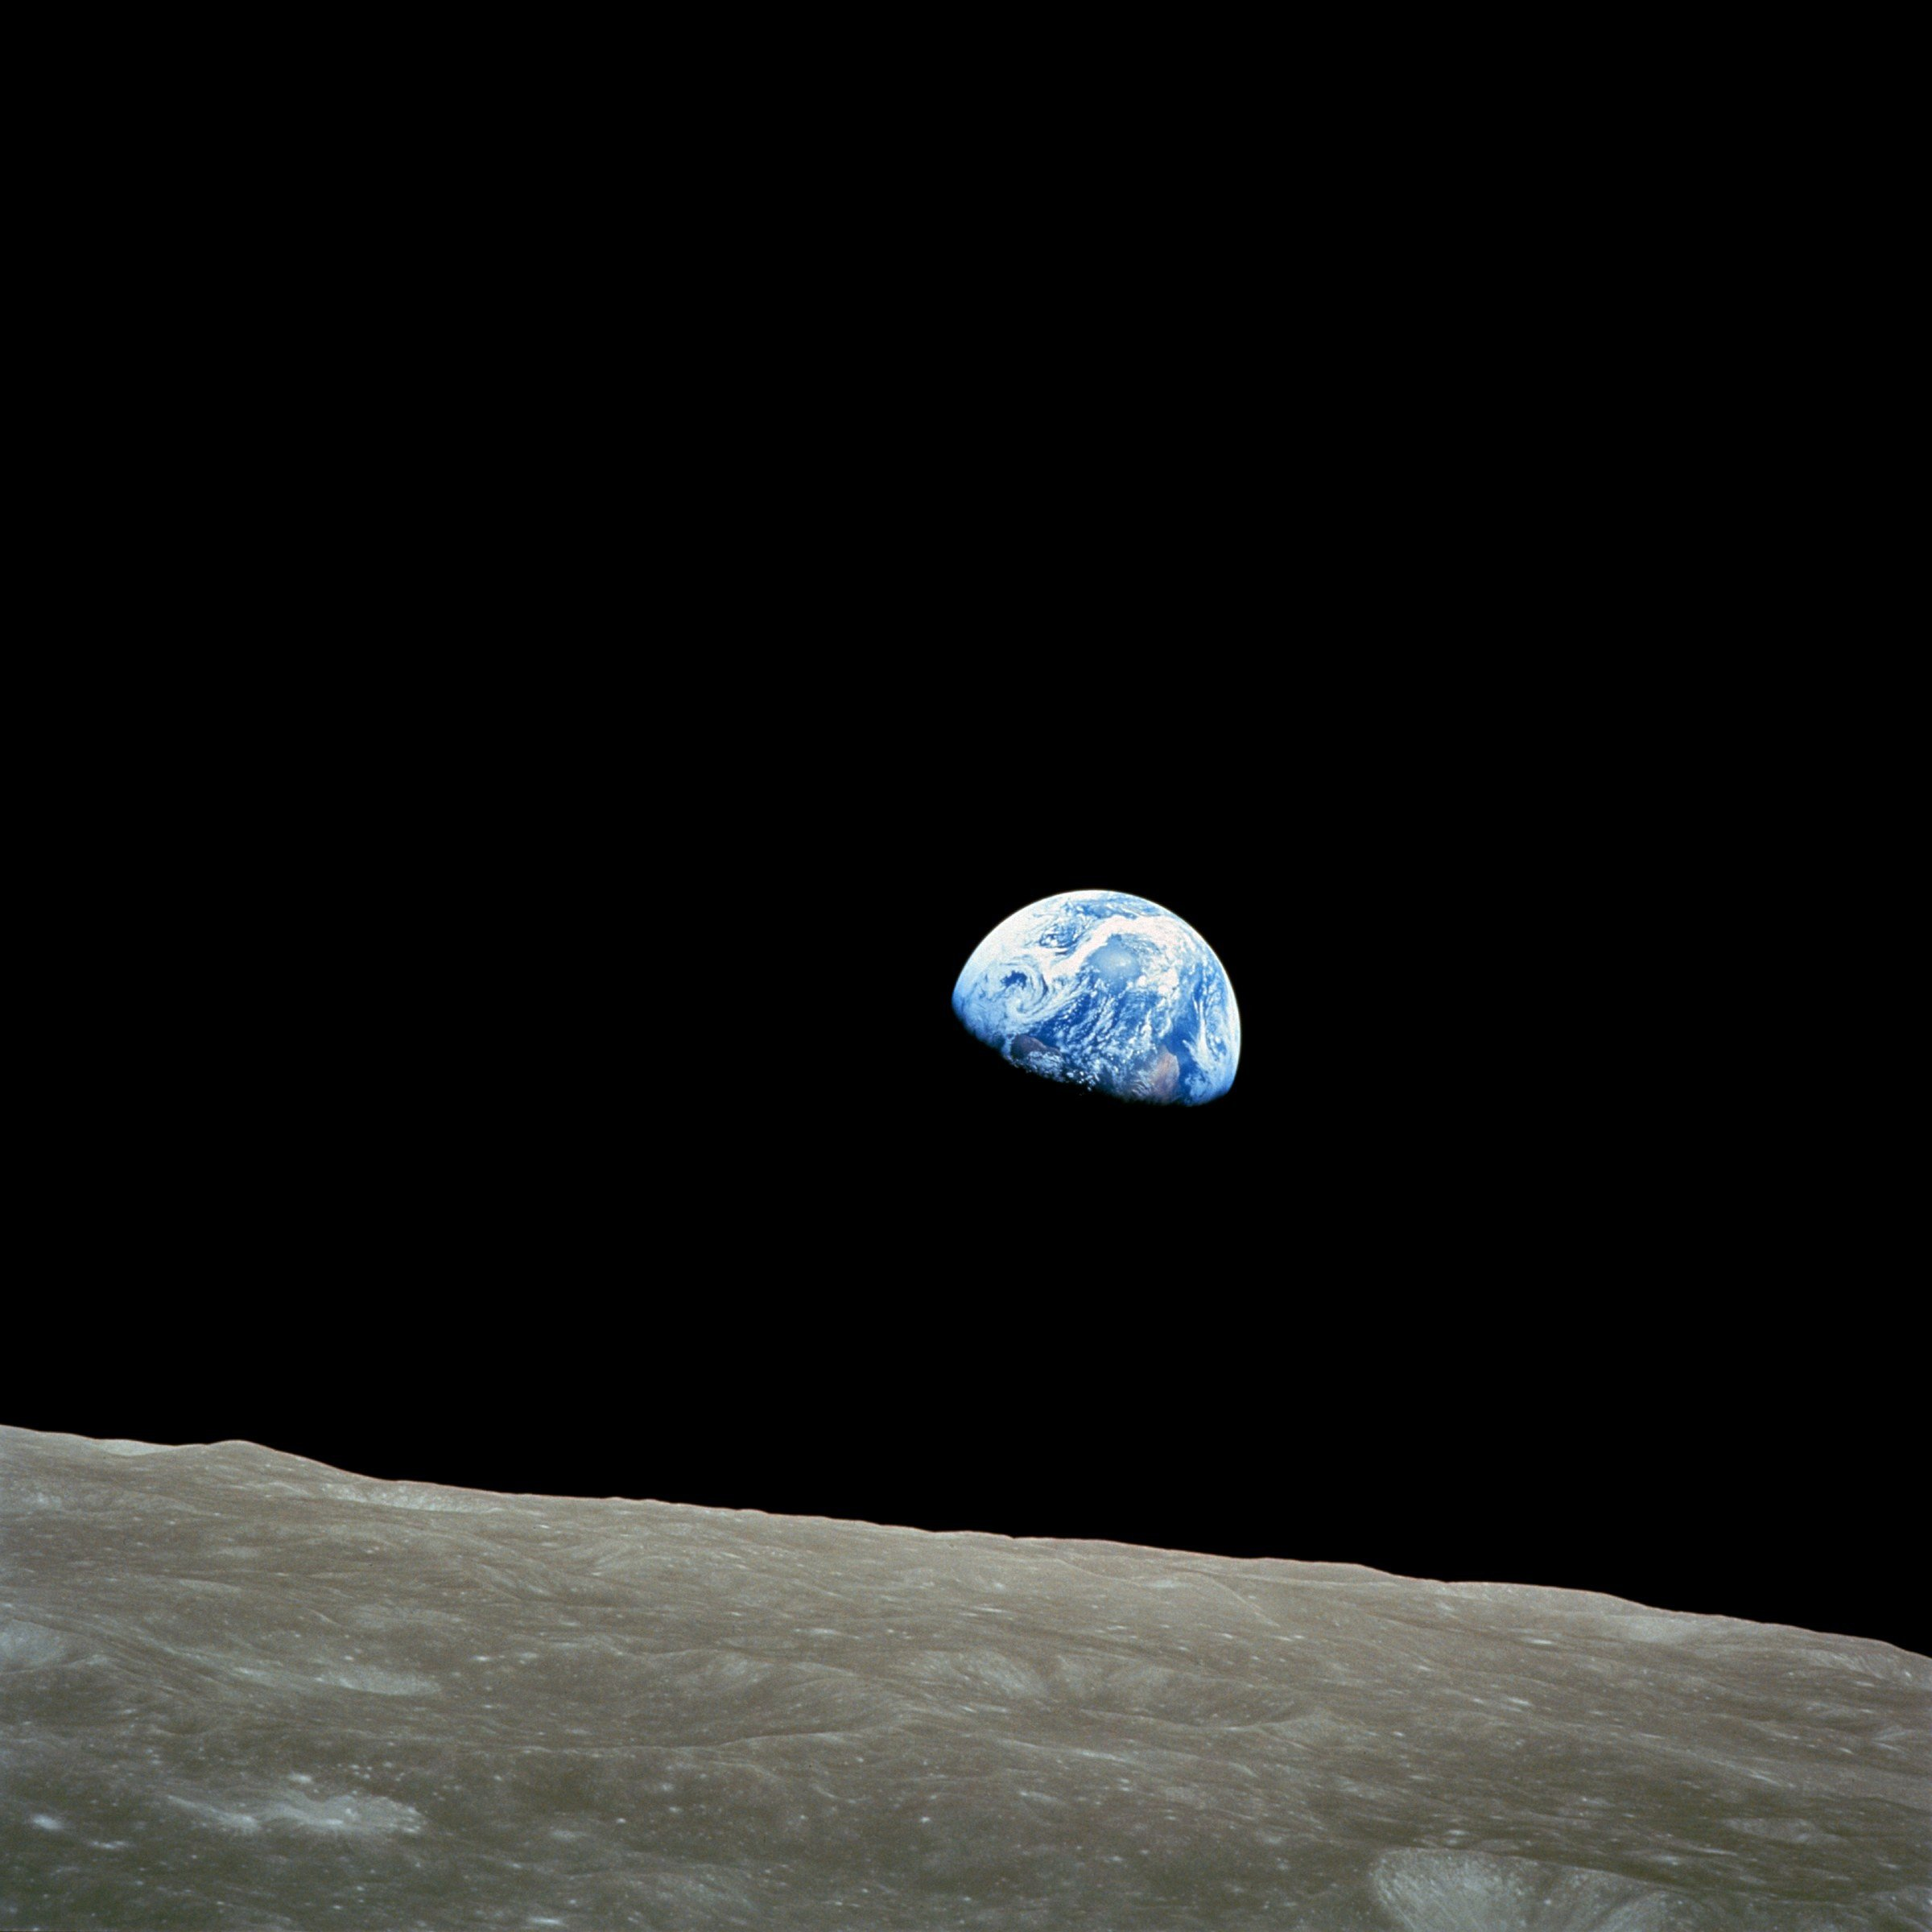 apollo 8, earthrise, space, moon, earth, nasa hd wallpapers